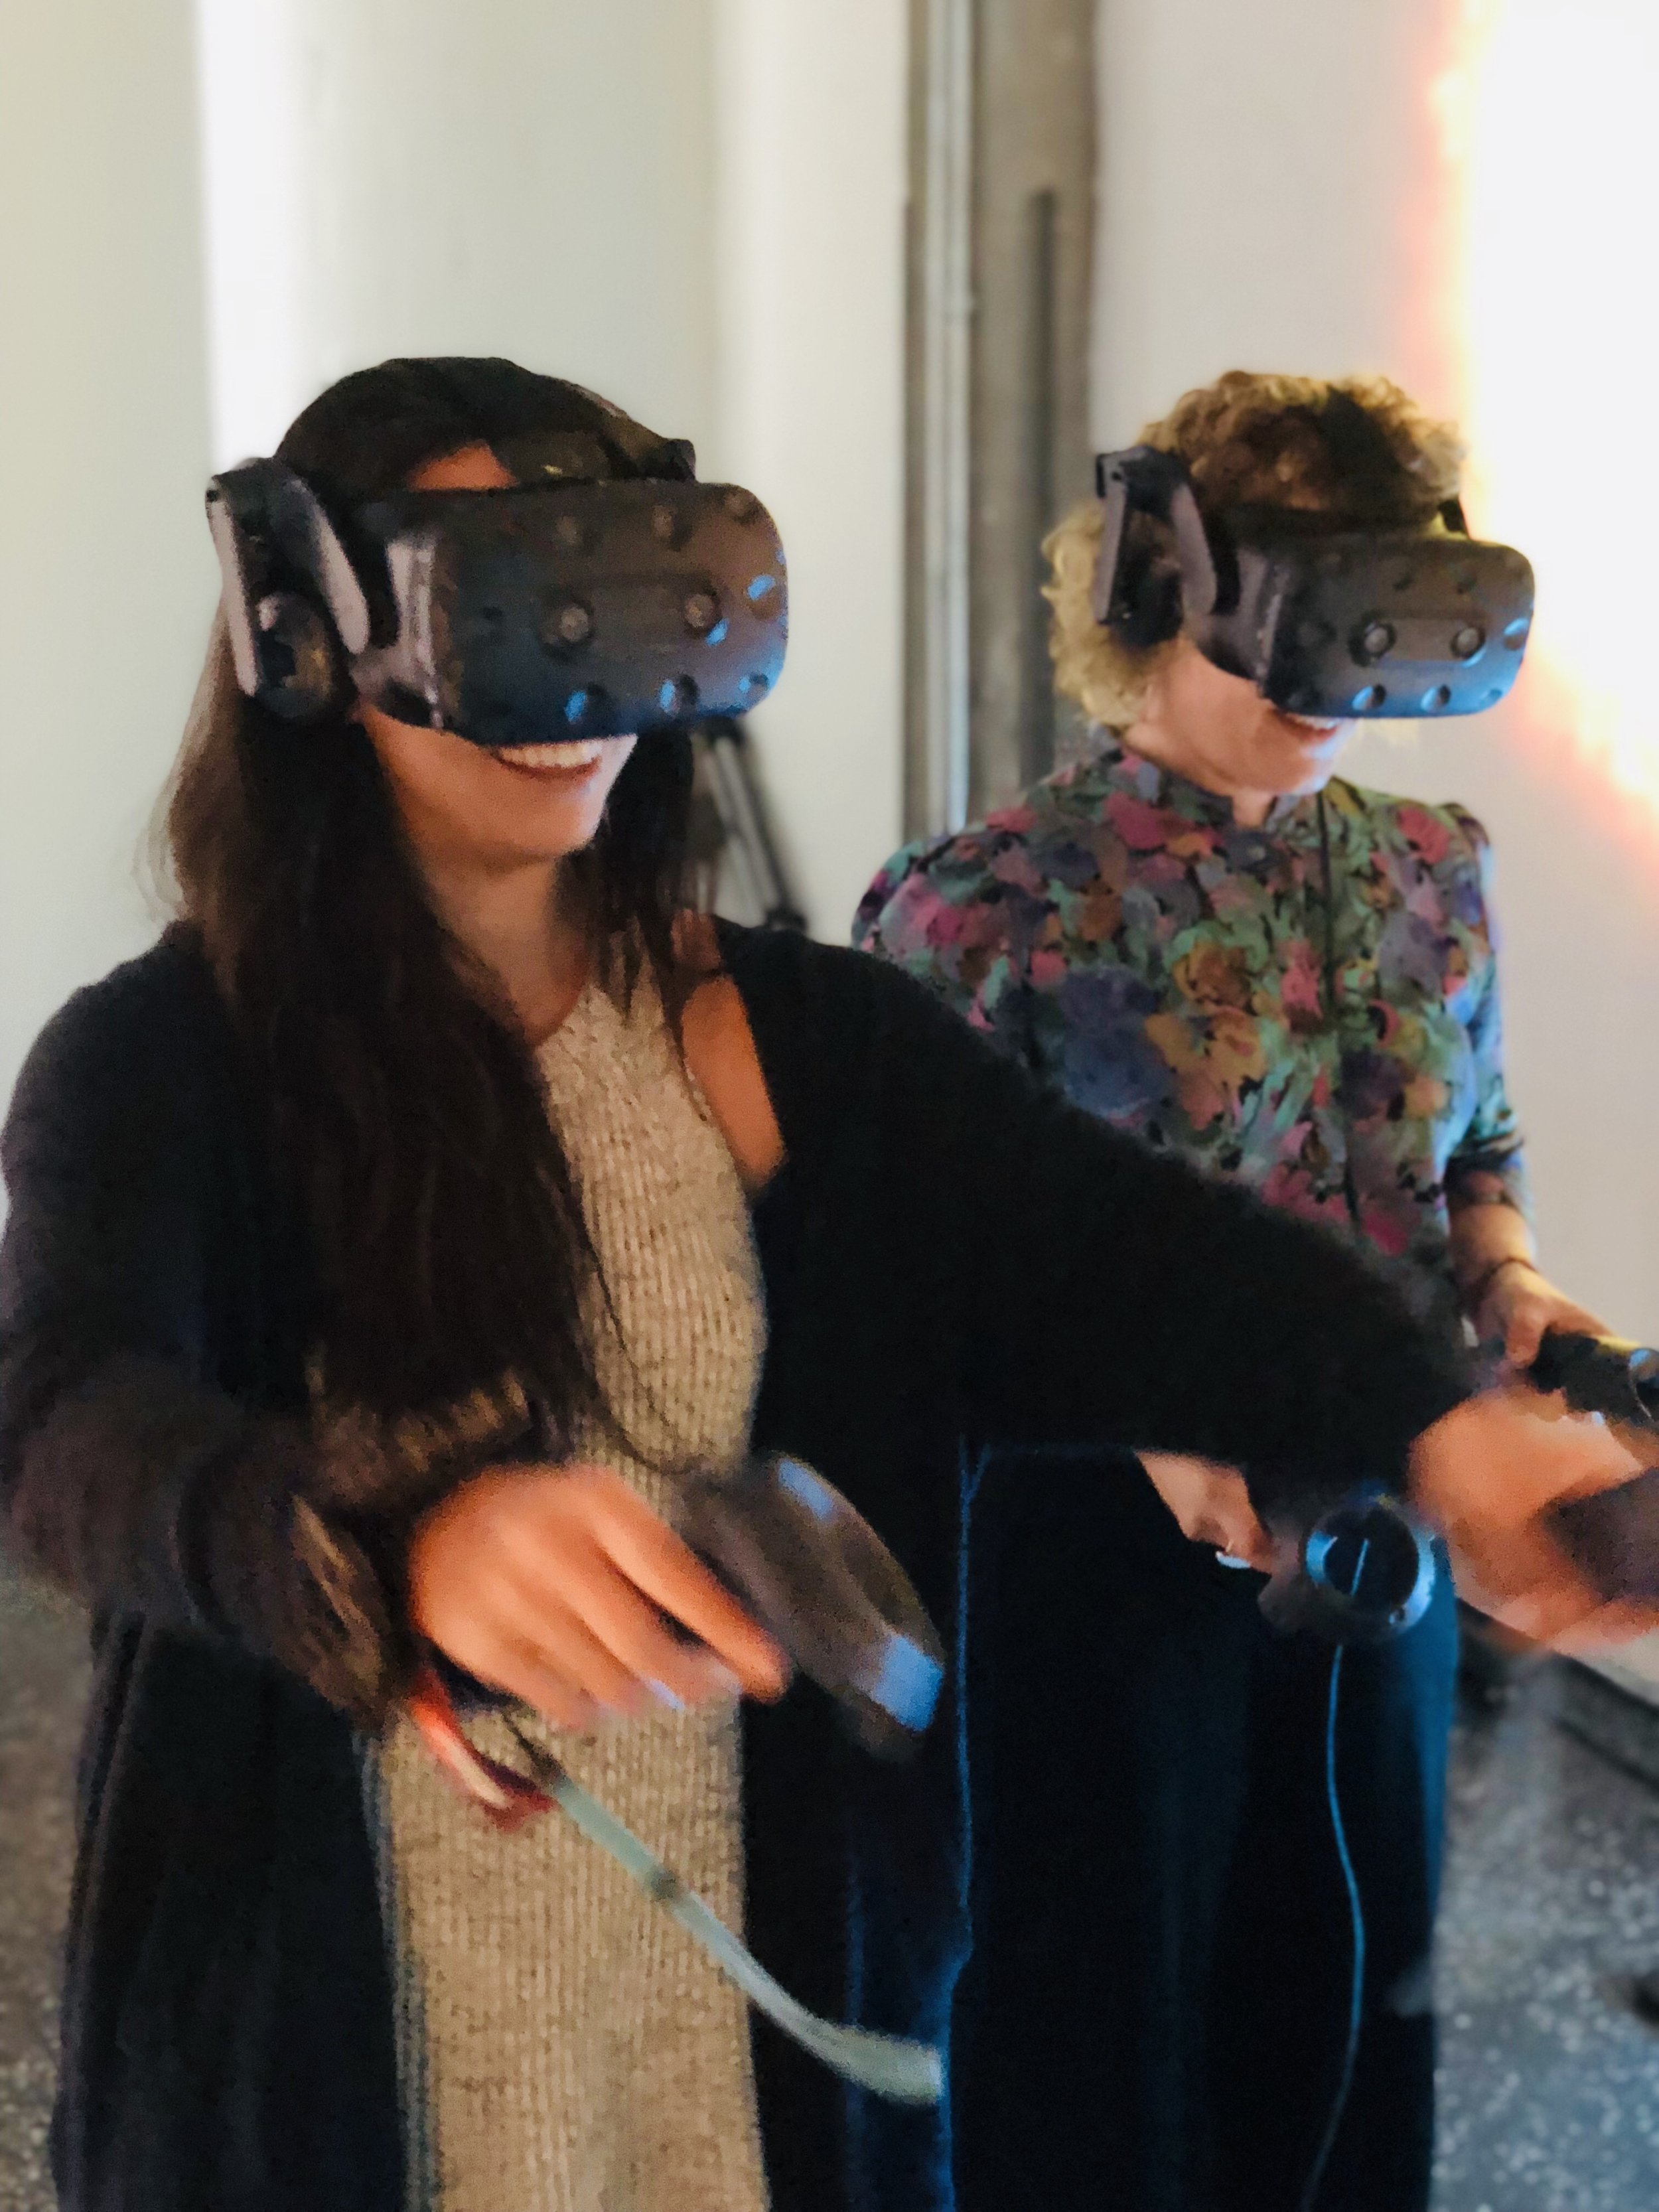 """Exploring """"Outer Space"""" with our VR headsets"""